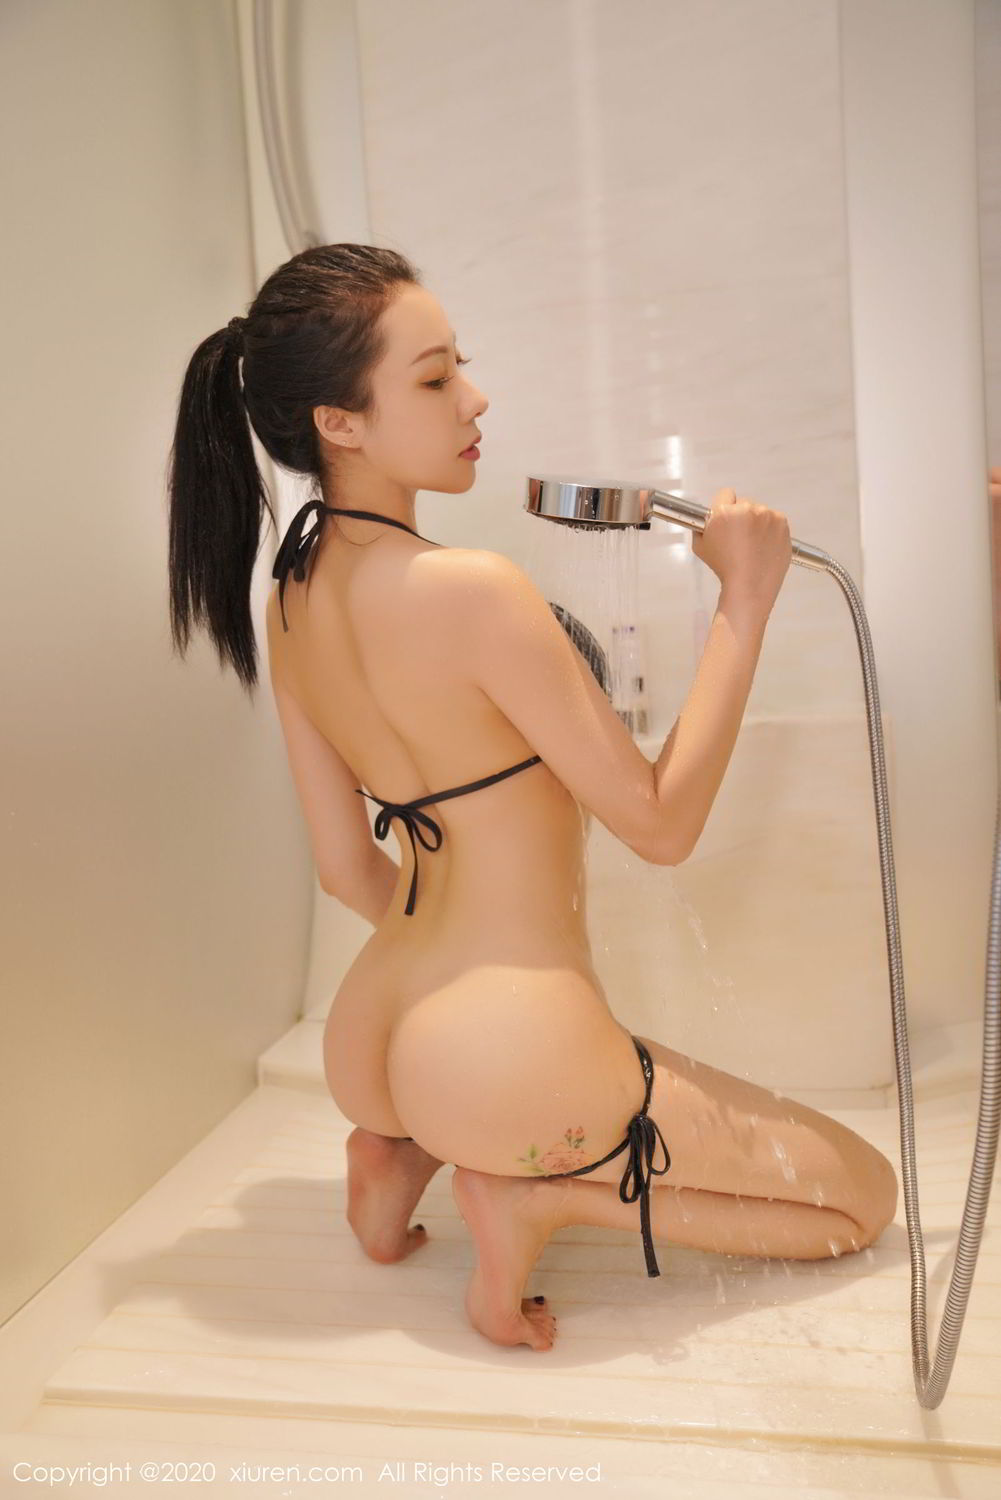 [XiuRen] Vol.2264 Song Guo Er 30P, Bathroom, Bikini, Song Guo Er, Wet, Xiuren